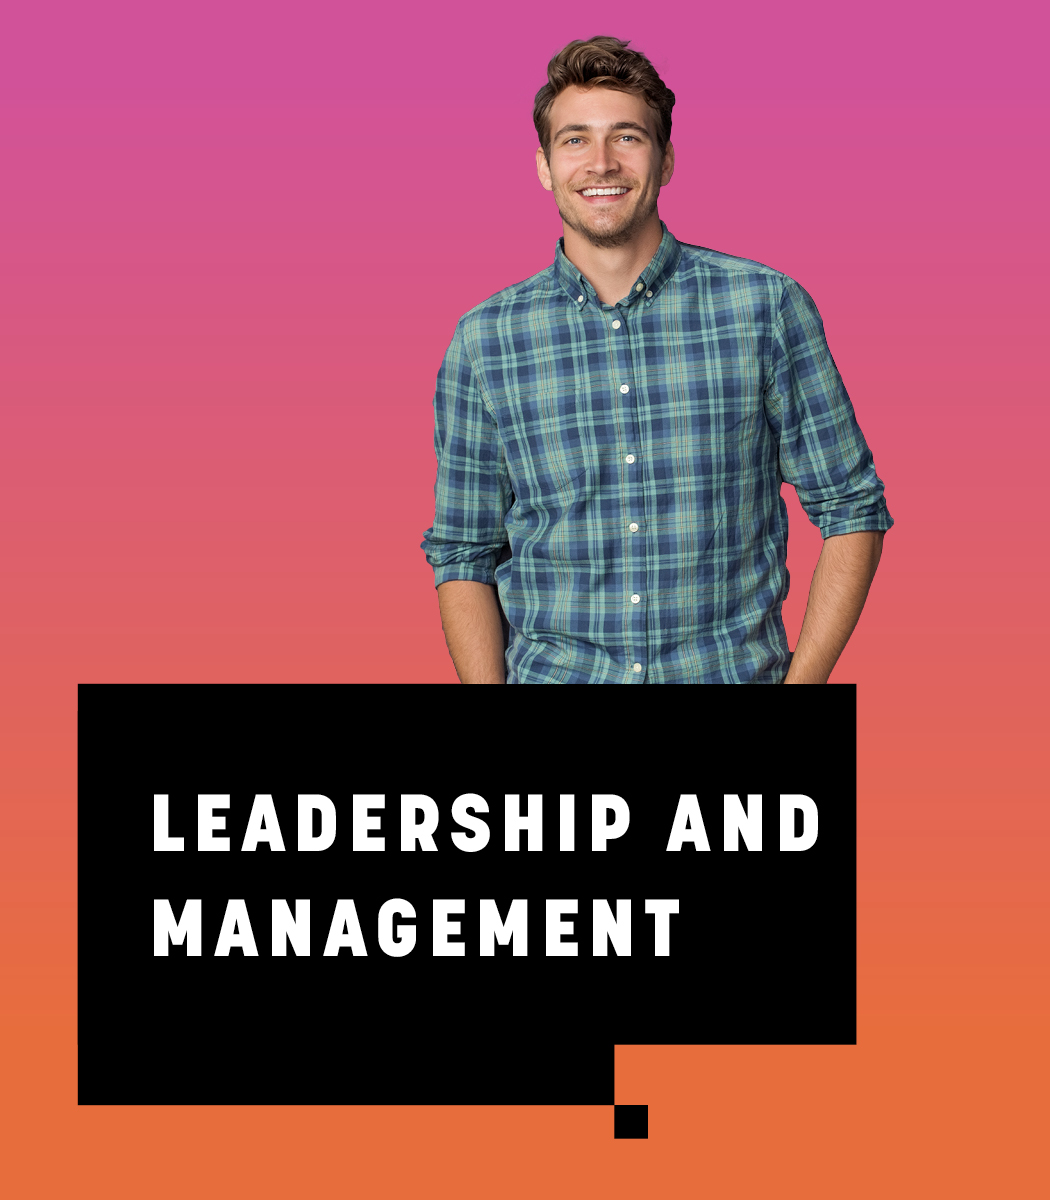 Leadership+and+Management+-+TAFE+Digital+-+EFY+Web+Tile.jpg